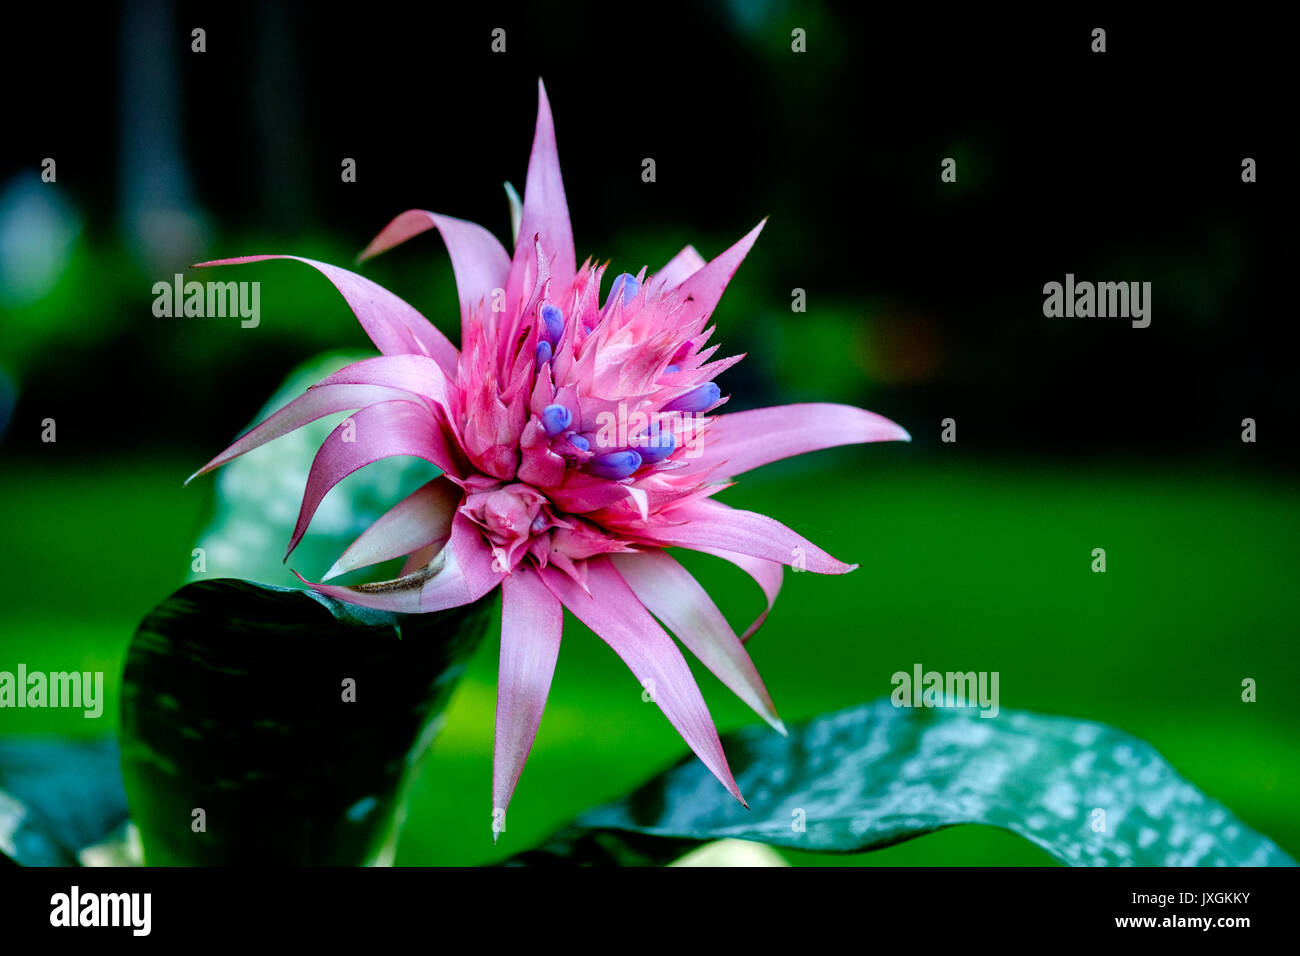 A tropical bromeliad plant in full bloom in a home garden setting. - Stock Image